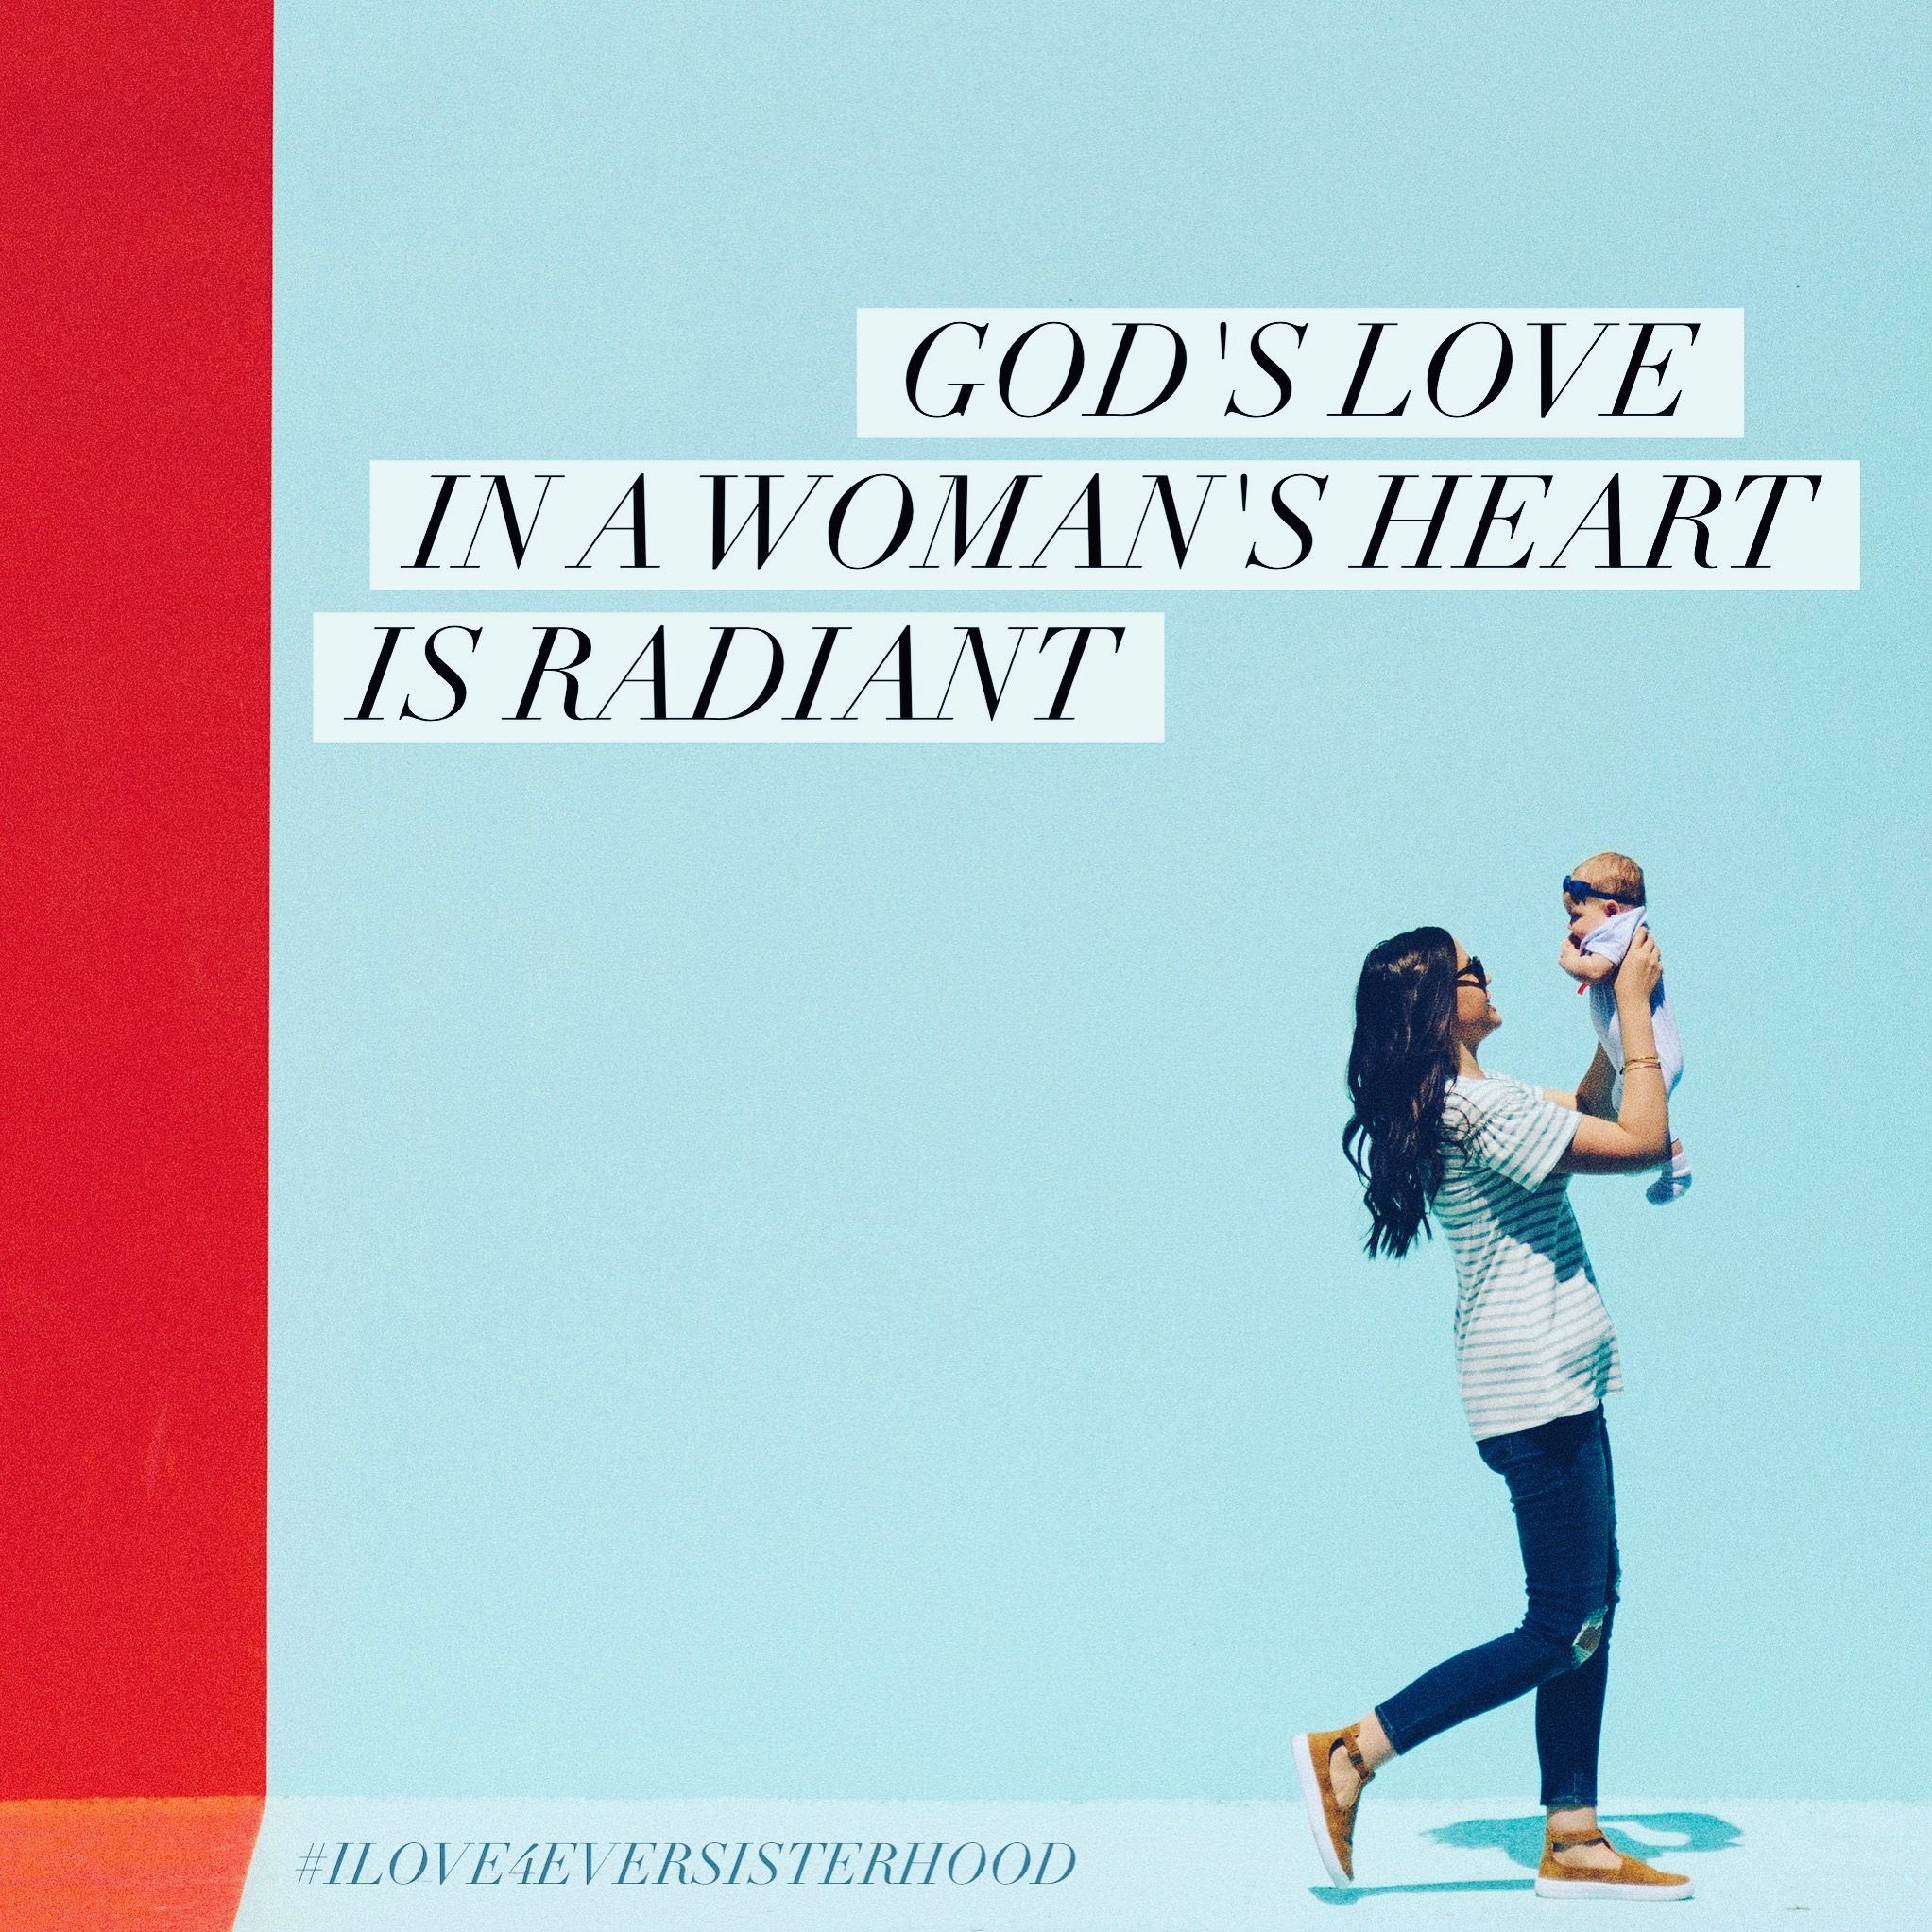 God's love in a woman's heart is radiant